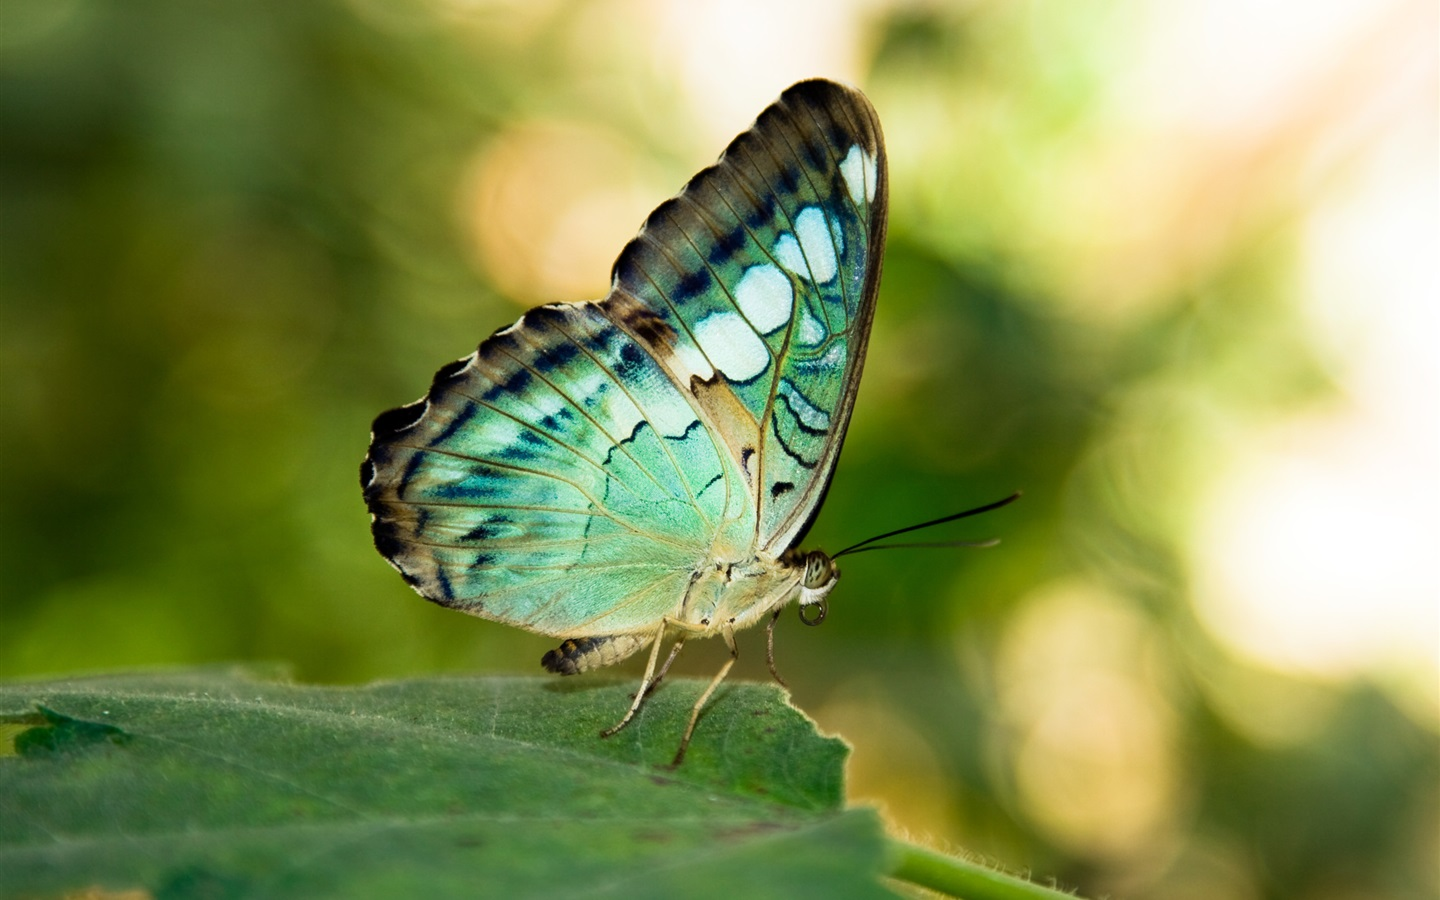 Two Cute Friends Wallpaper Wallpaper Green Or Blue Wings Butterfly Leaf Insect